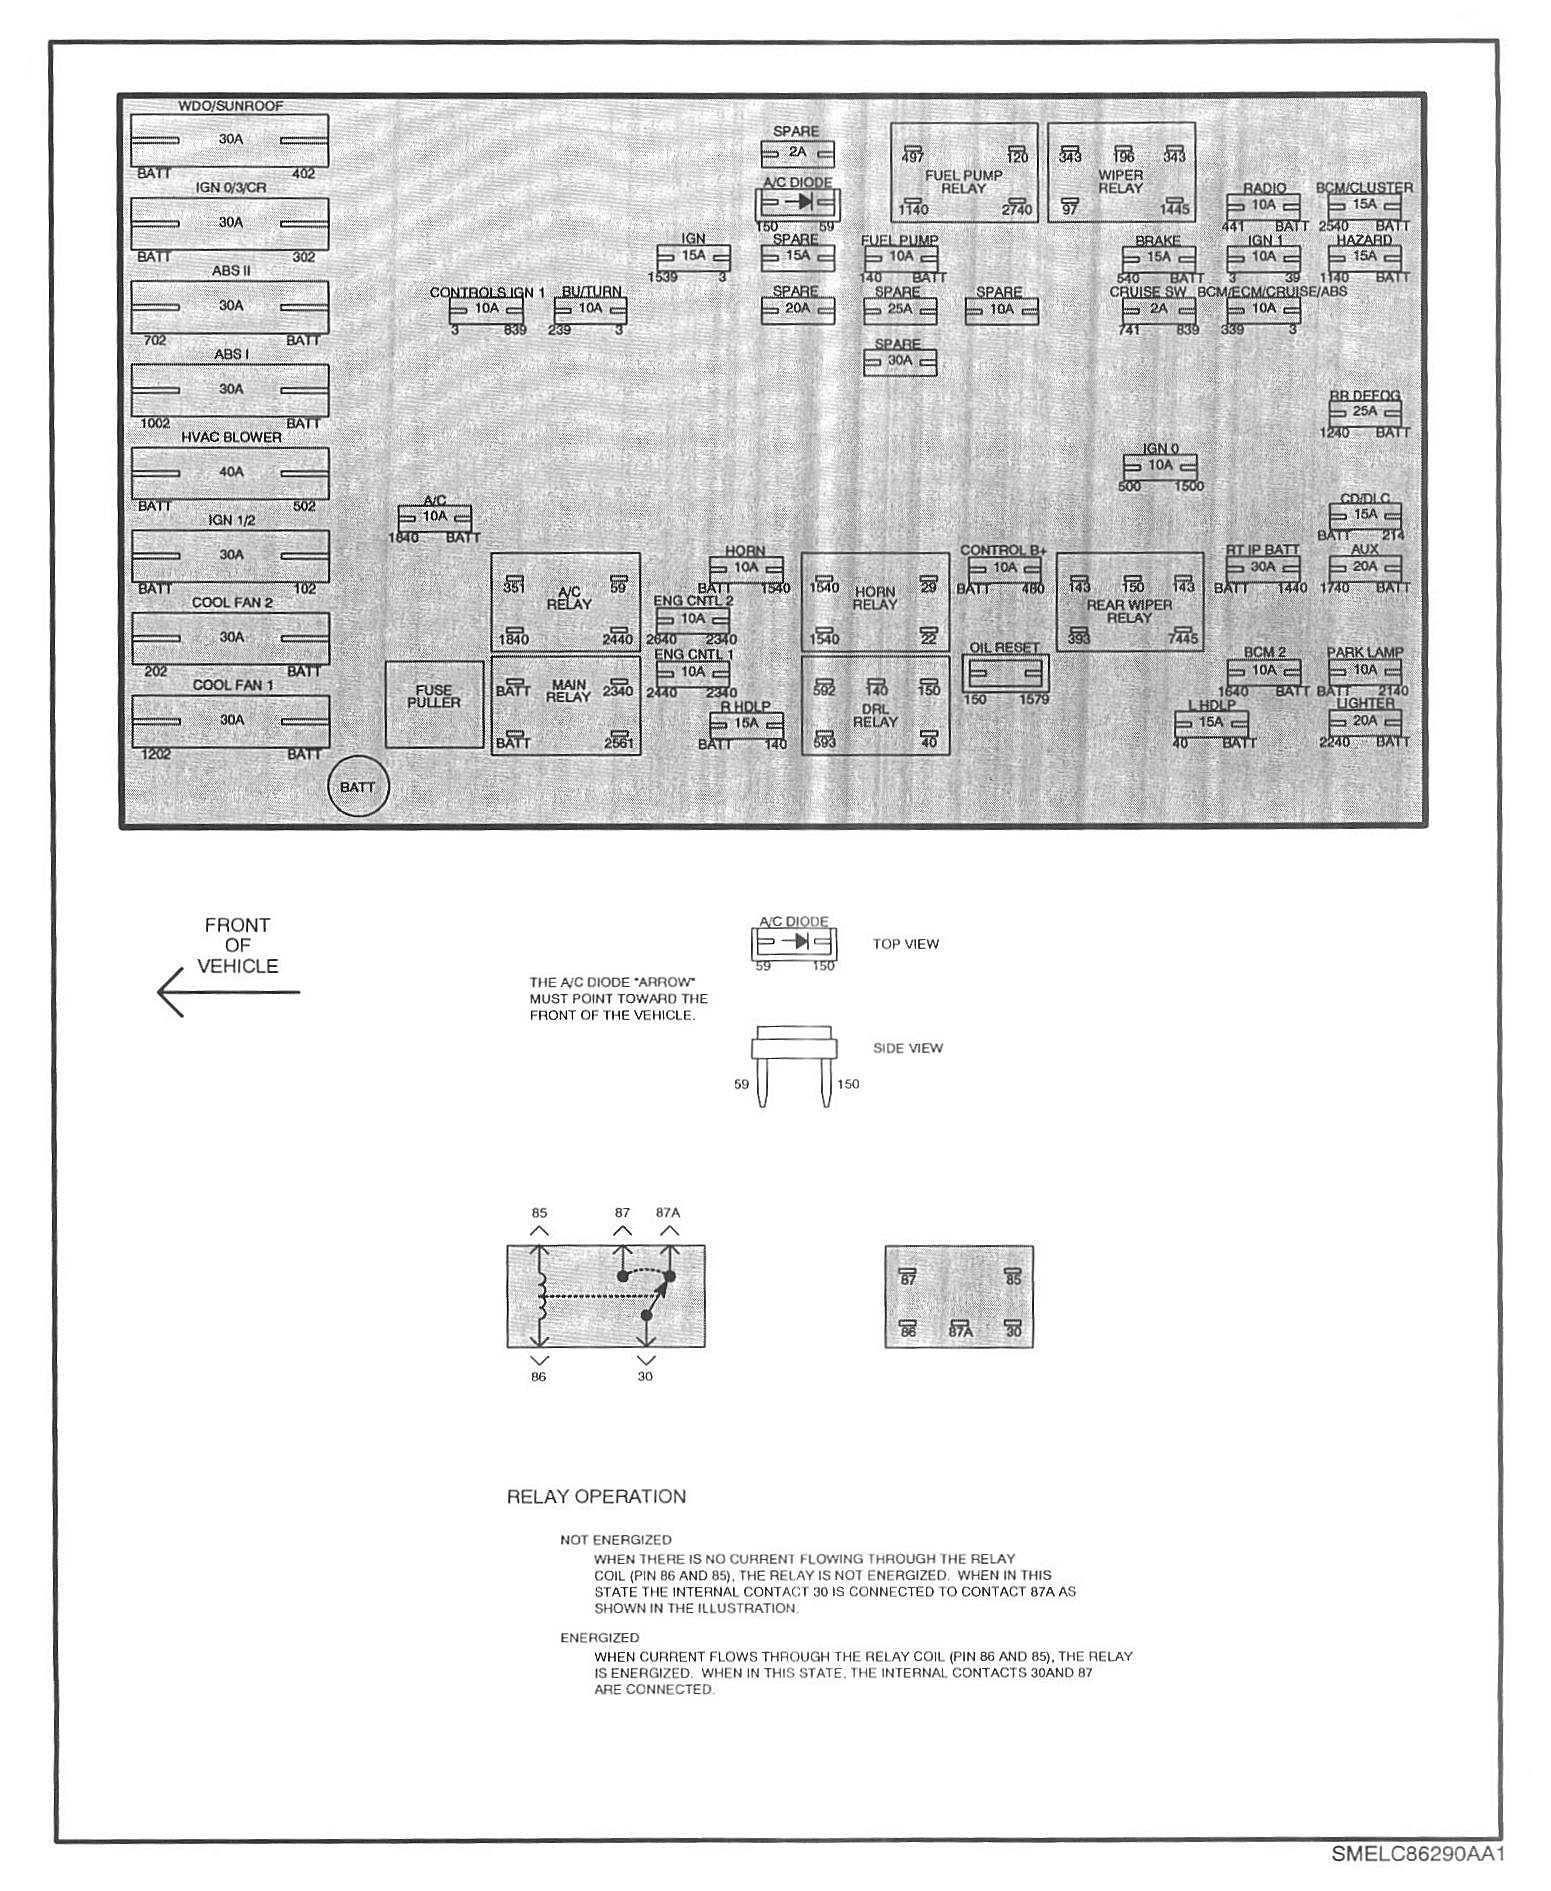 hight resolution of 2004 toyota 4runner fuse box diagram 36 wiring diagram images 1999 4runner fuse diagram 1993 toyota